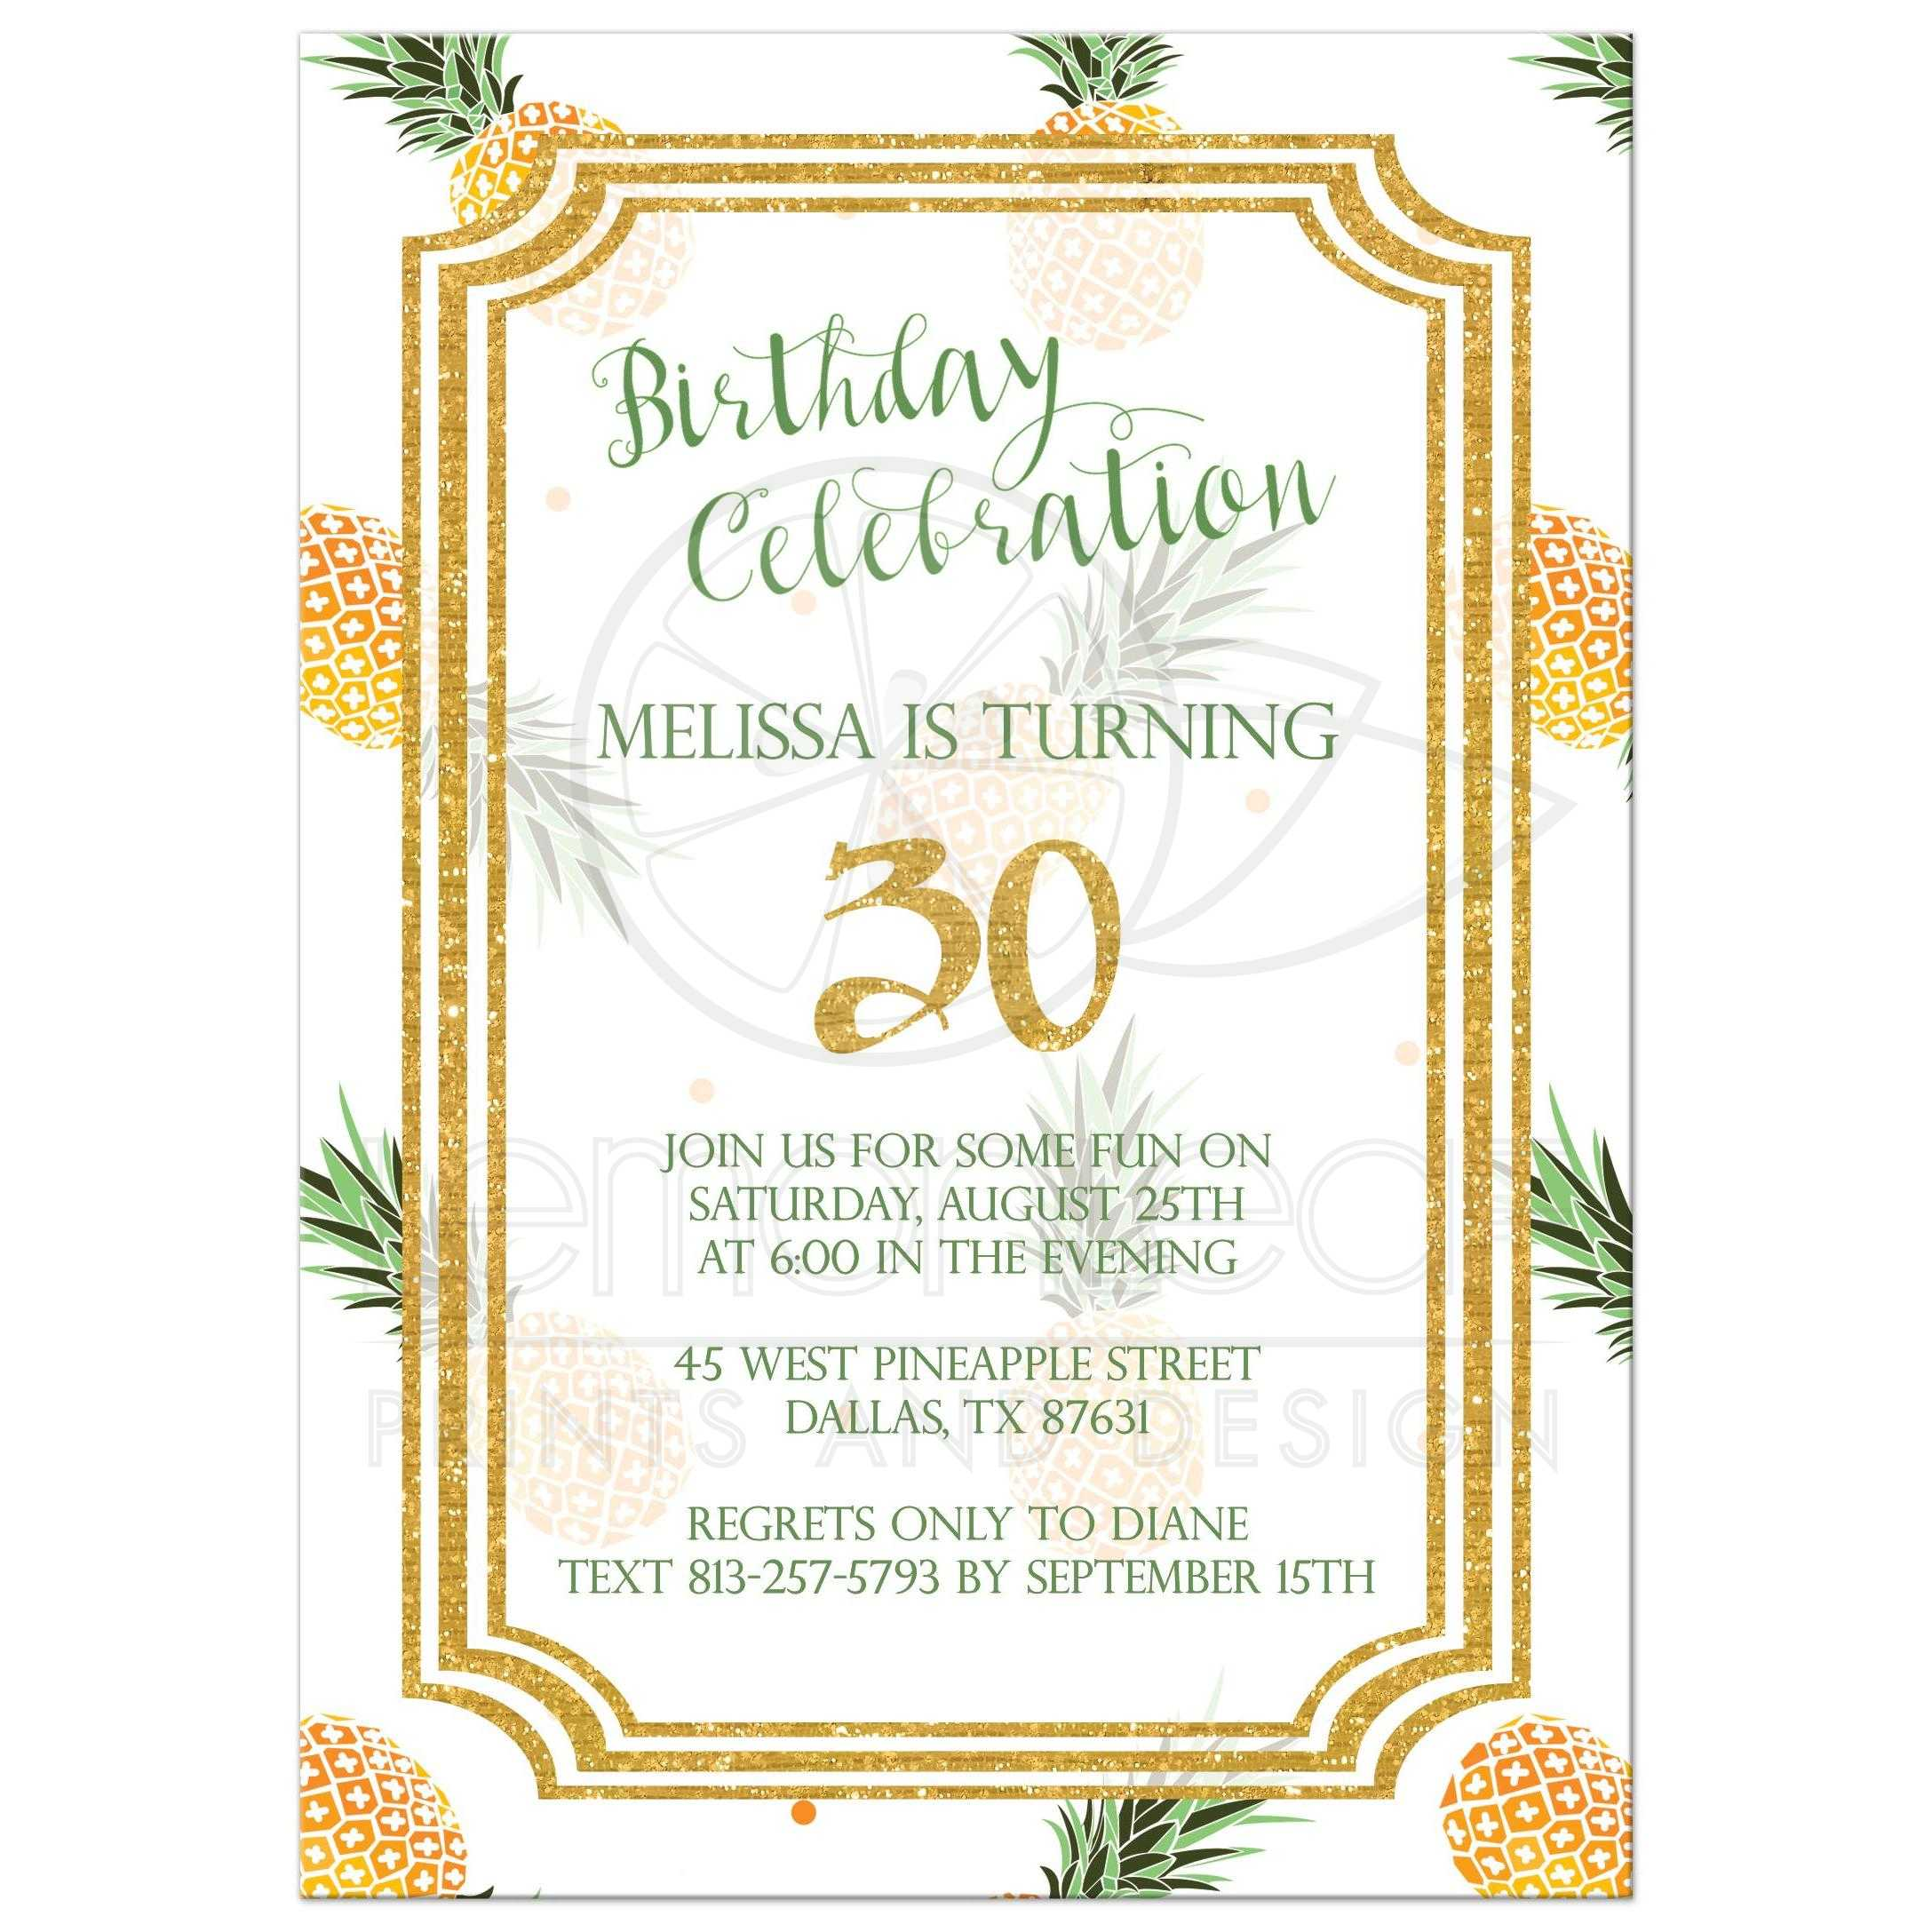 Pineapples and faux gold glitter birthday party invitation pineapple and gold glitter birthday party invitation filmwisefo